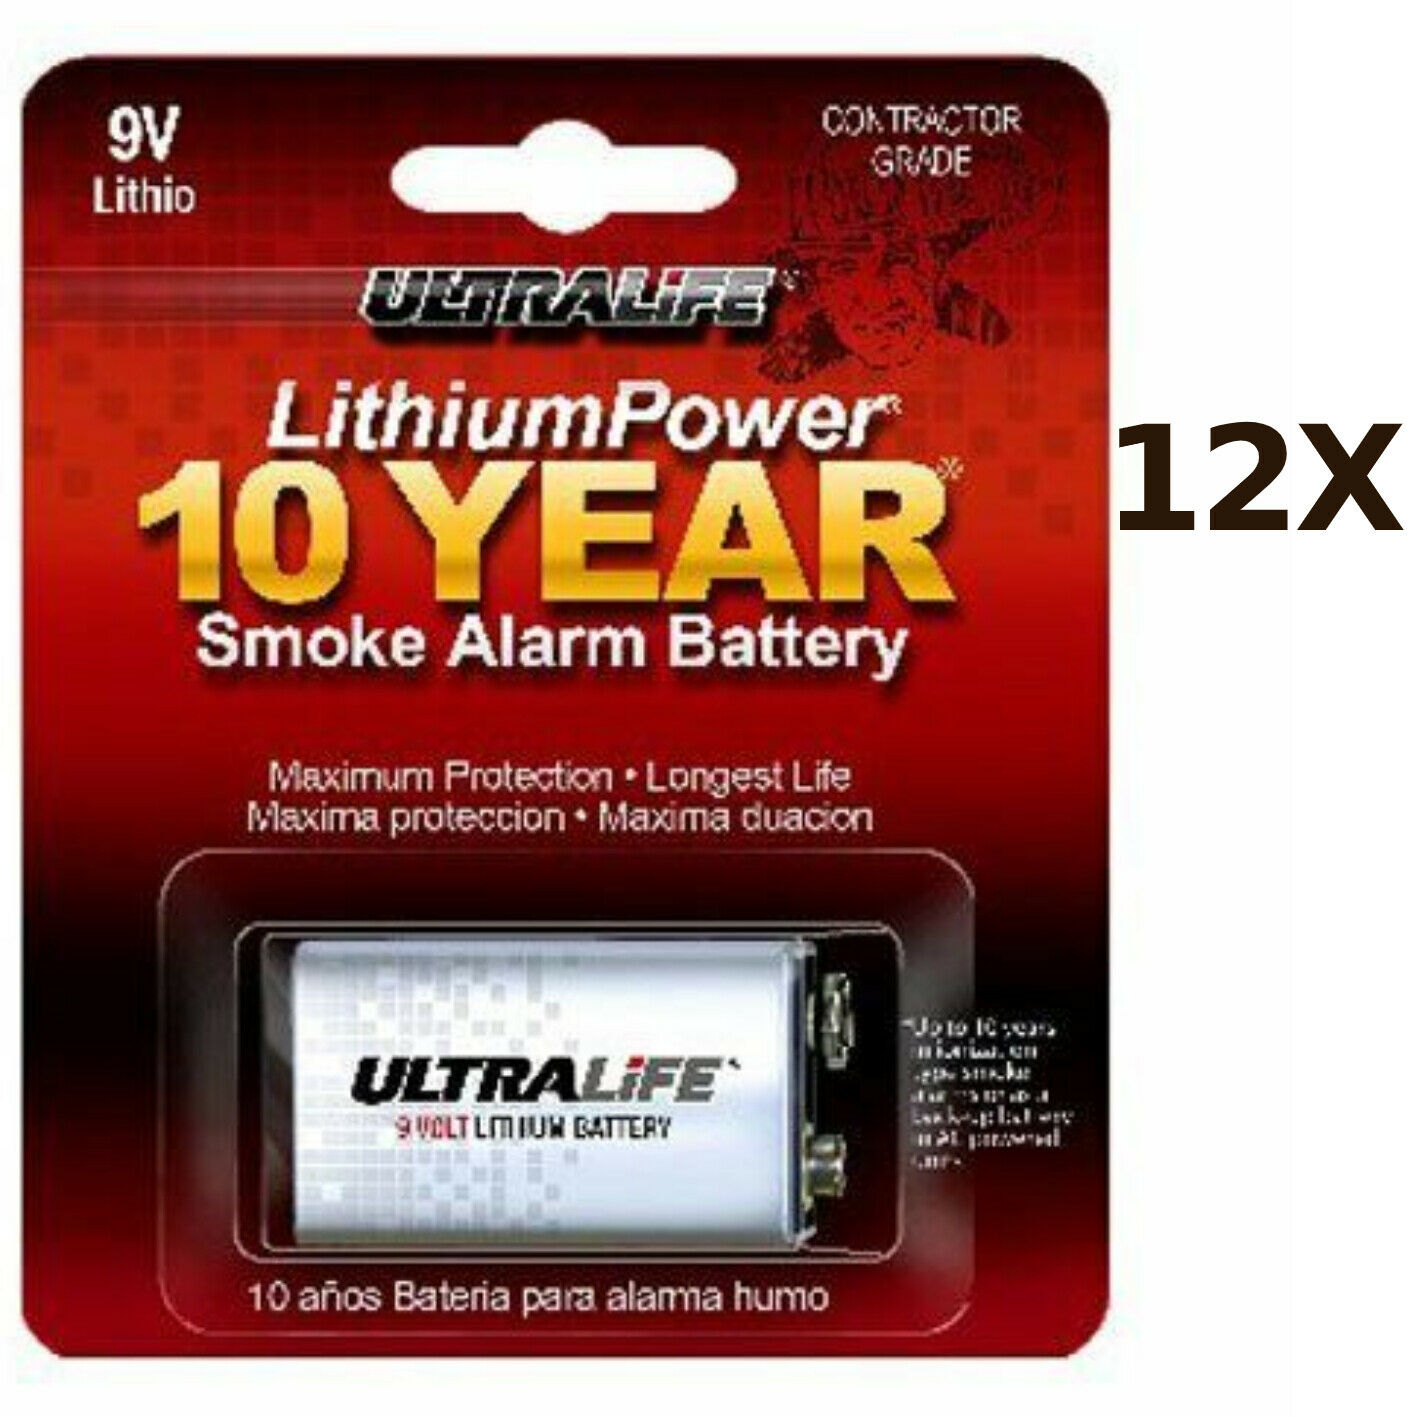 12X Ultra Life Batteries 9v Lithium High Energy Up to 5x More Than Alkaline